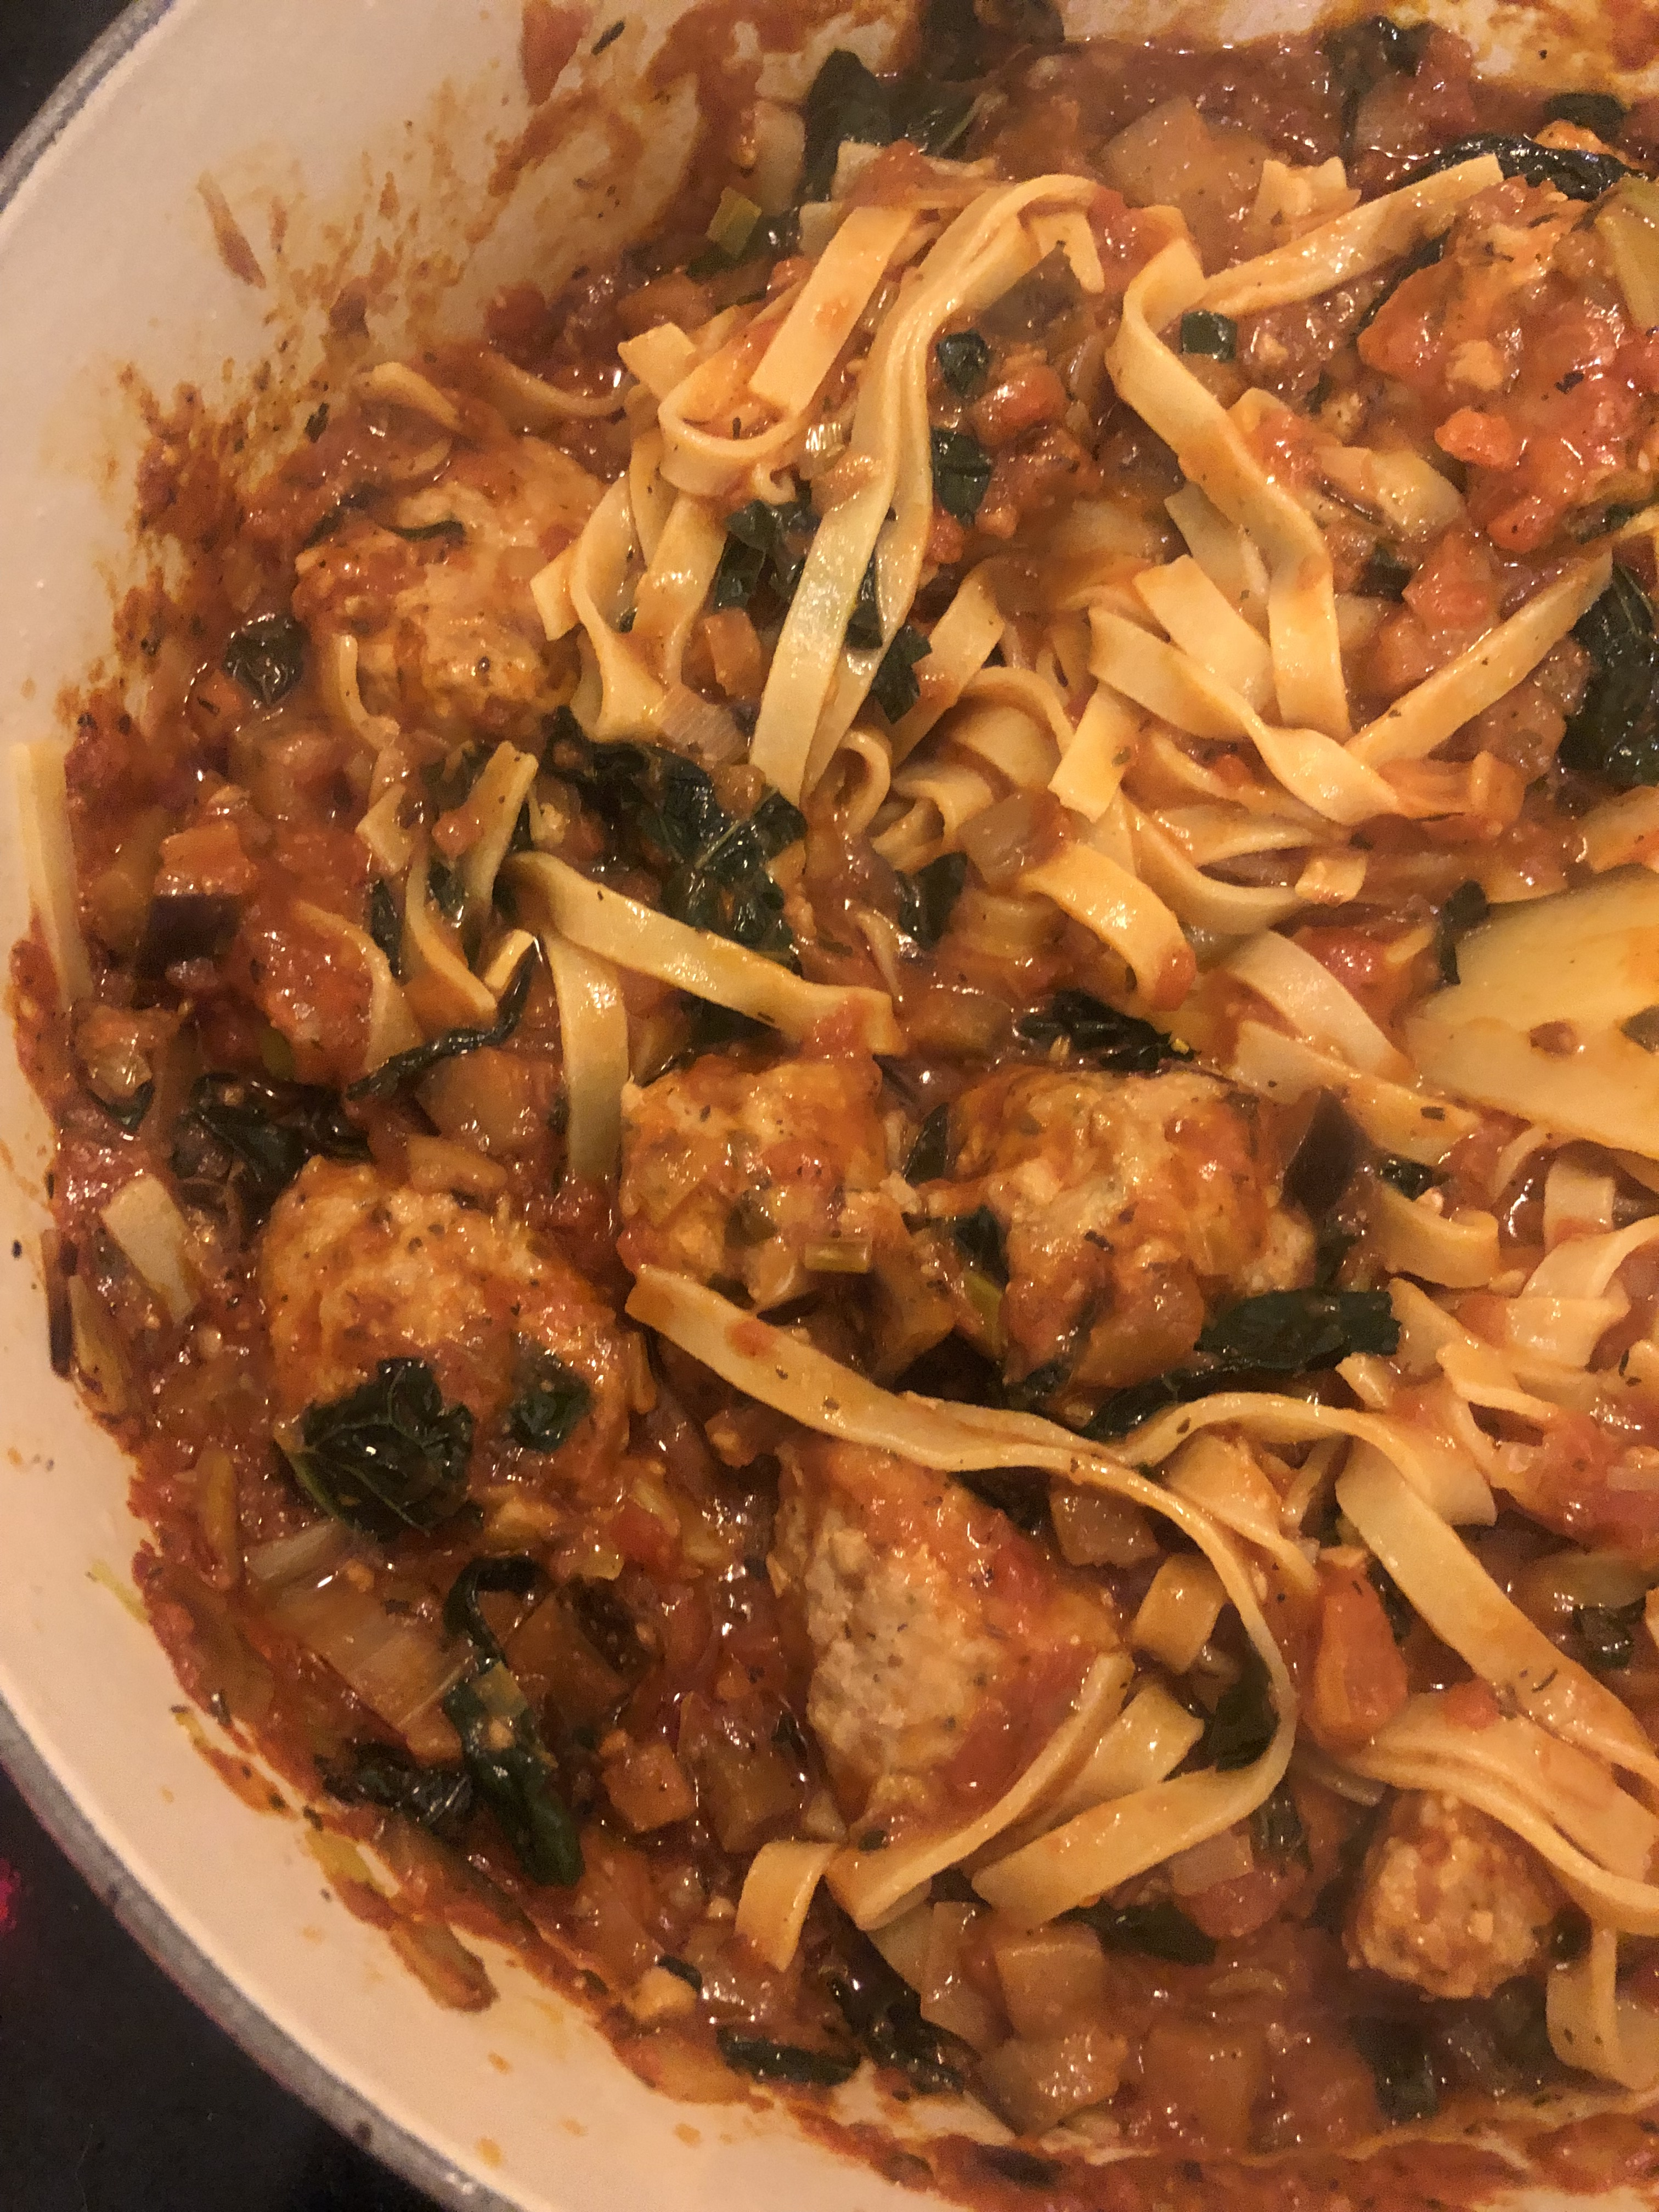 Chicken Meatballs with Eggplant, Leek and Kale Ragu over Almond Flour Fettuccine in a pot on the stove